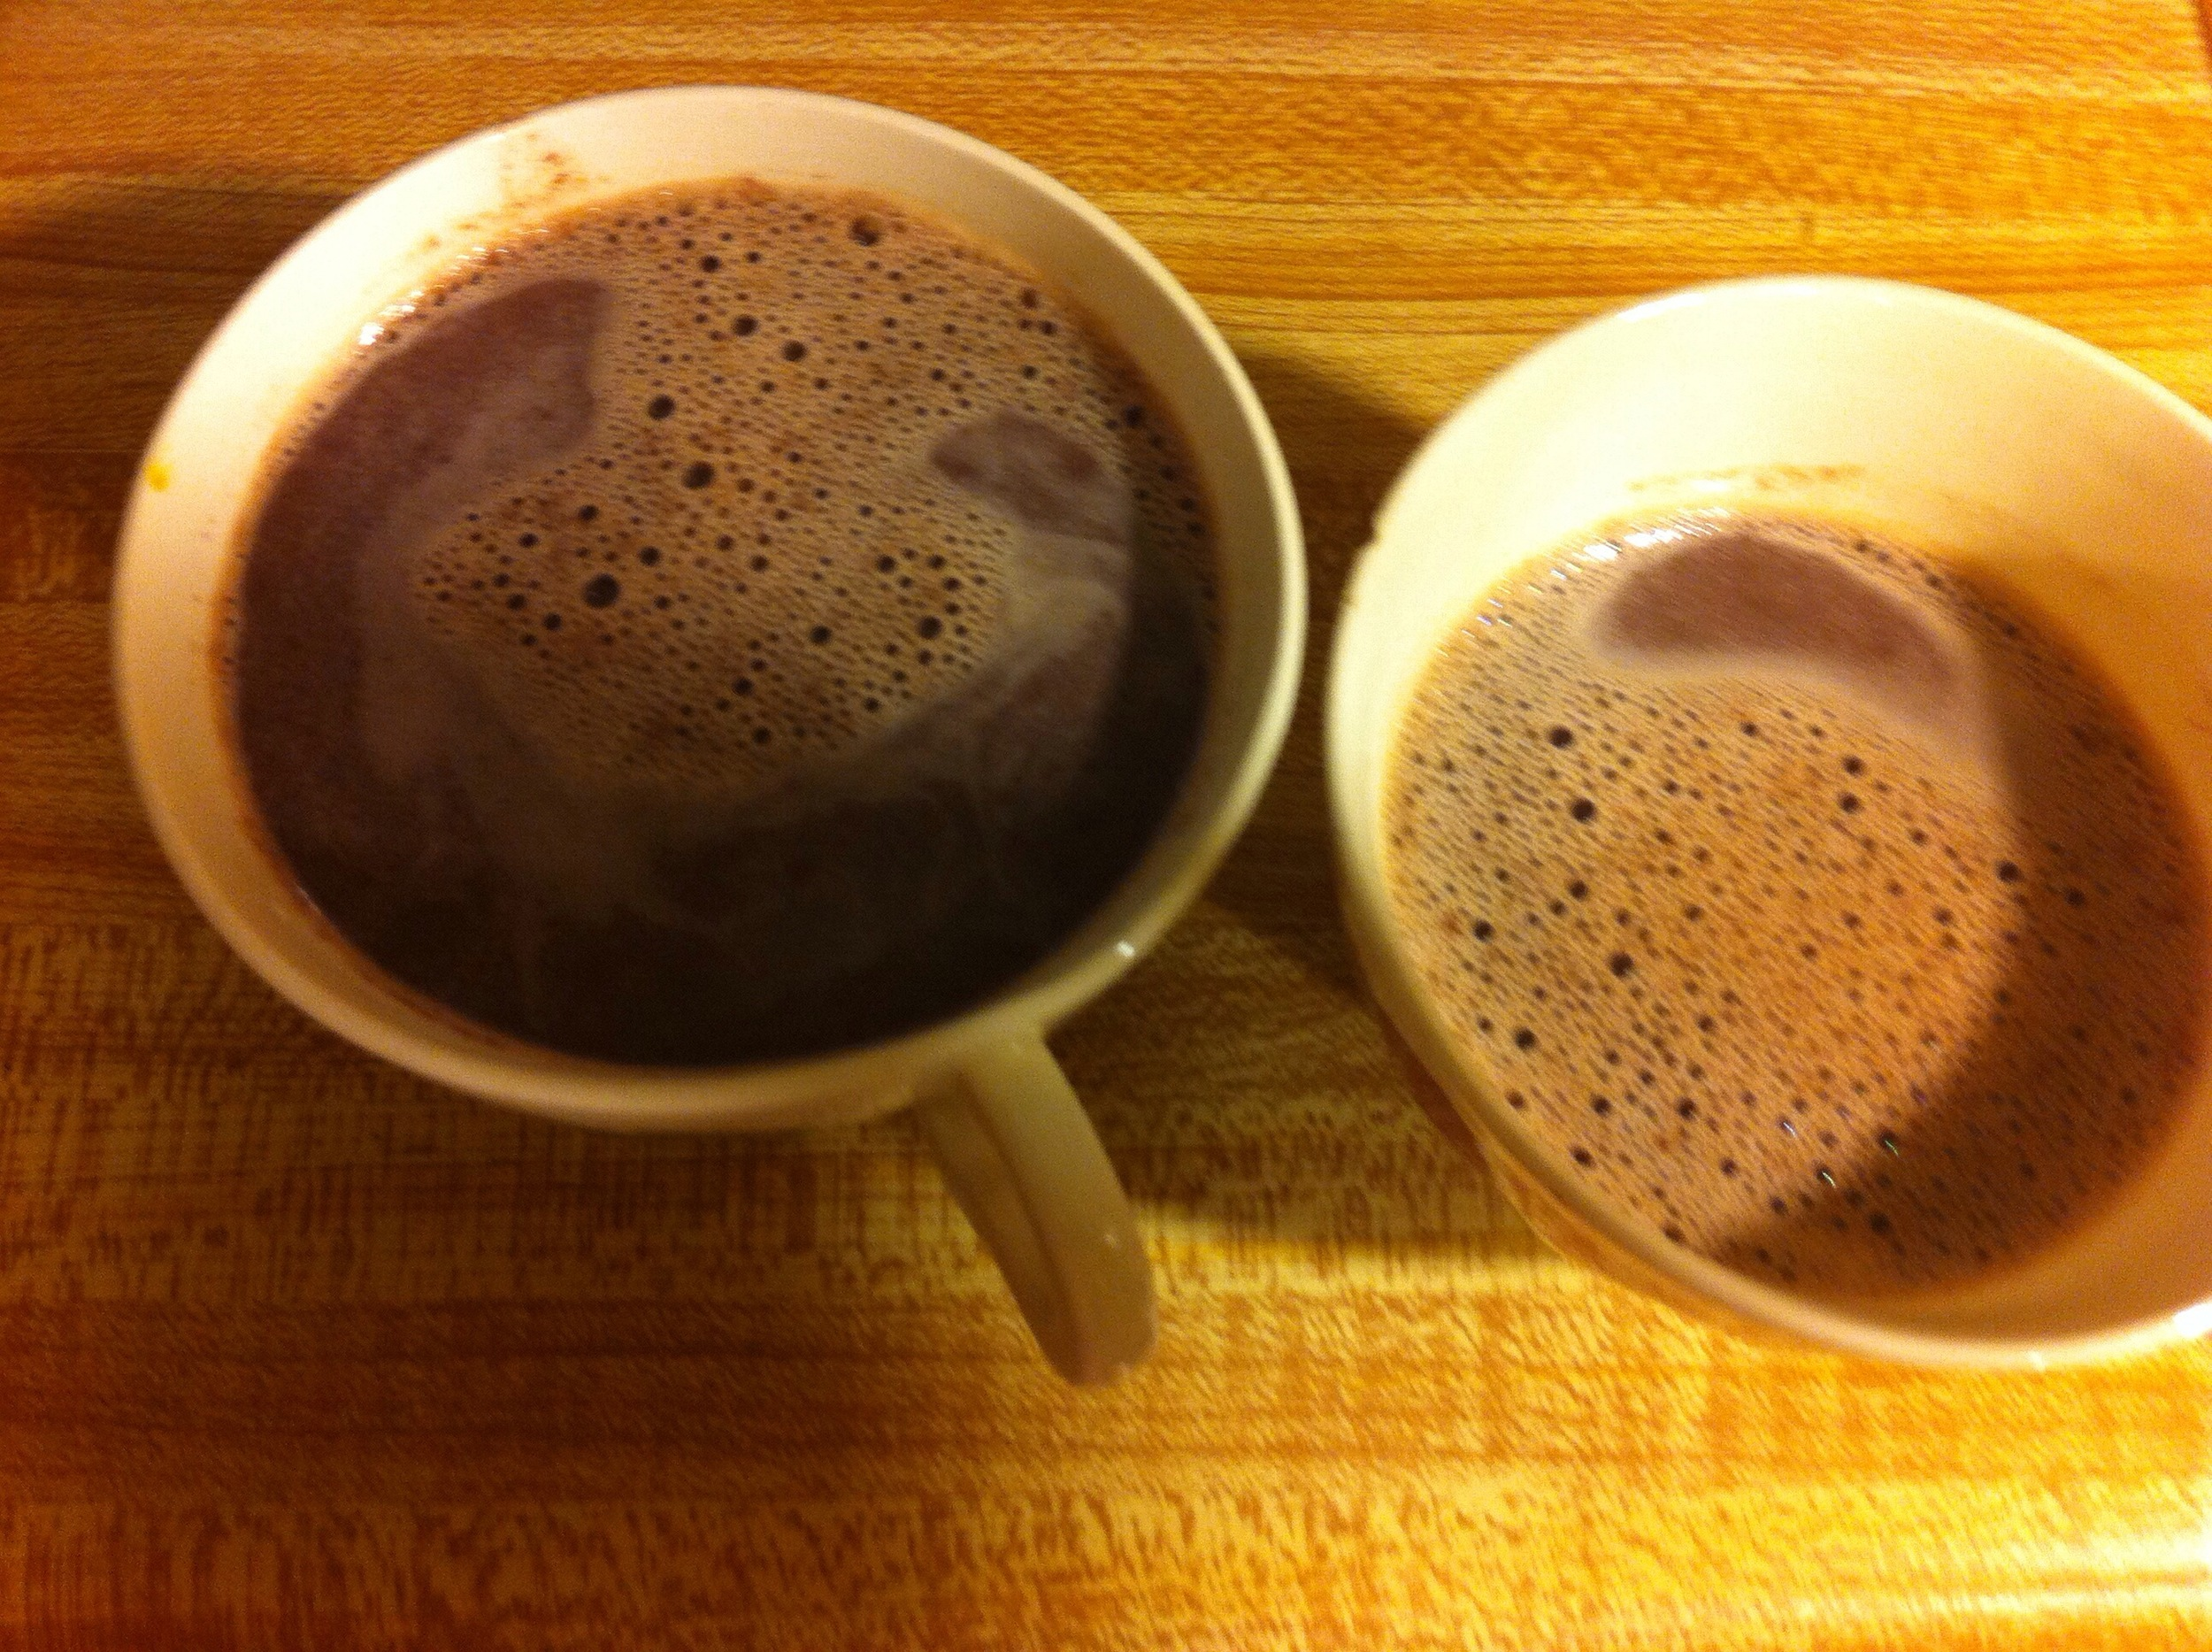 Pour your decadent and healthy hot chocolate into the mugs or tea cups of your liking and enjoy!